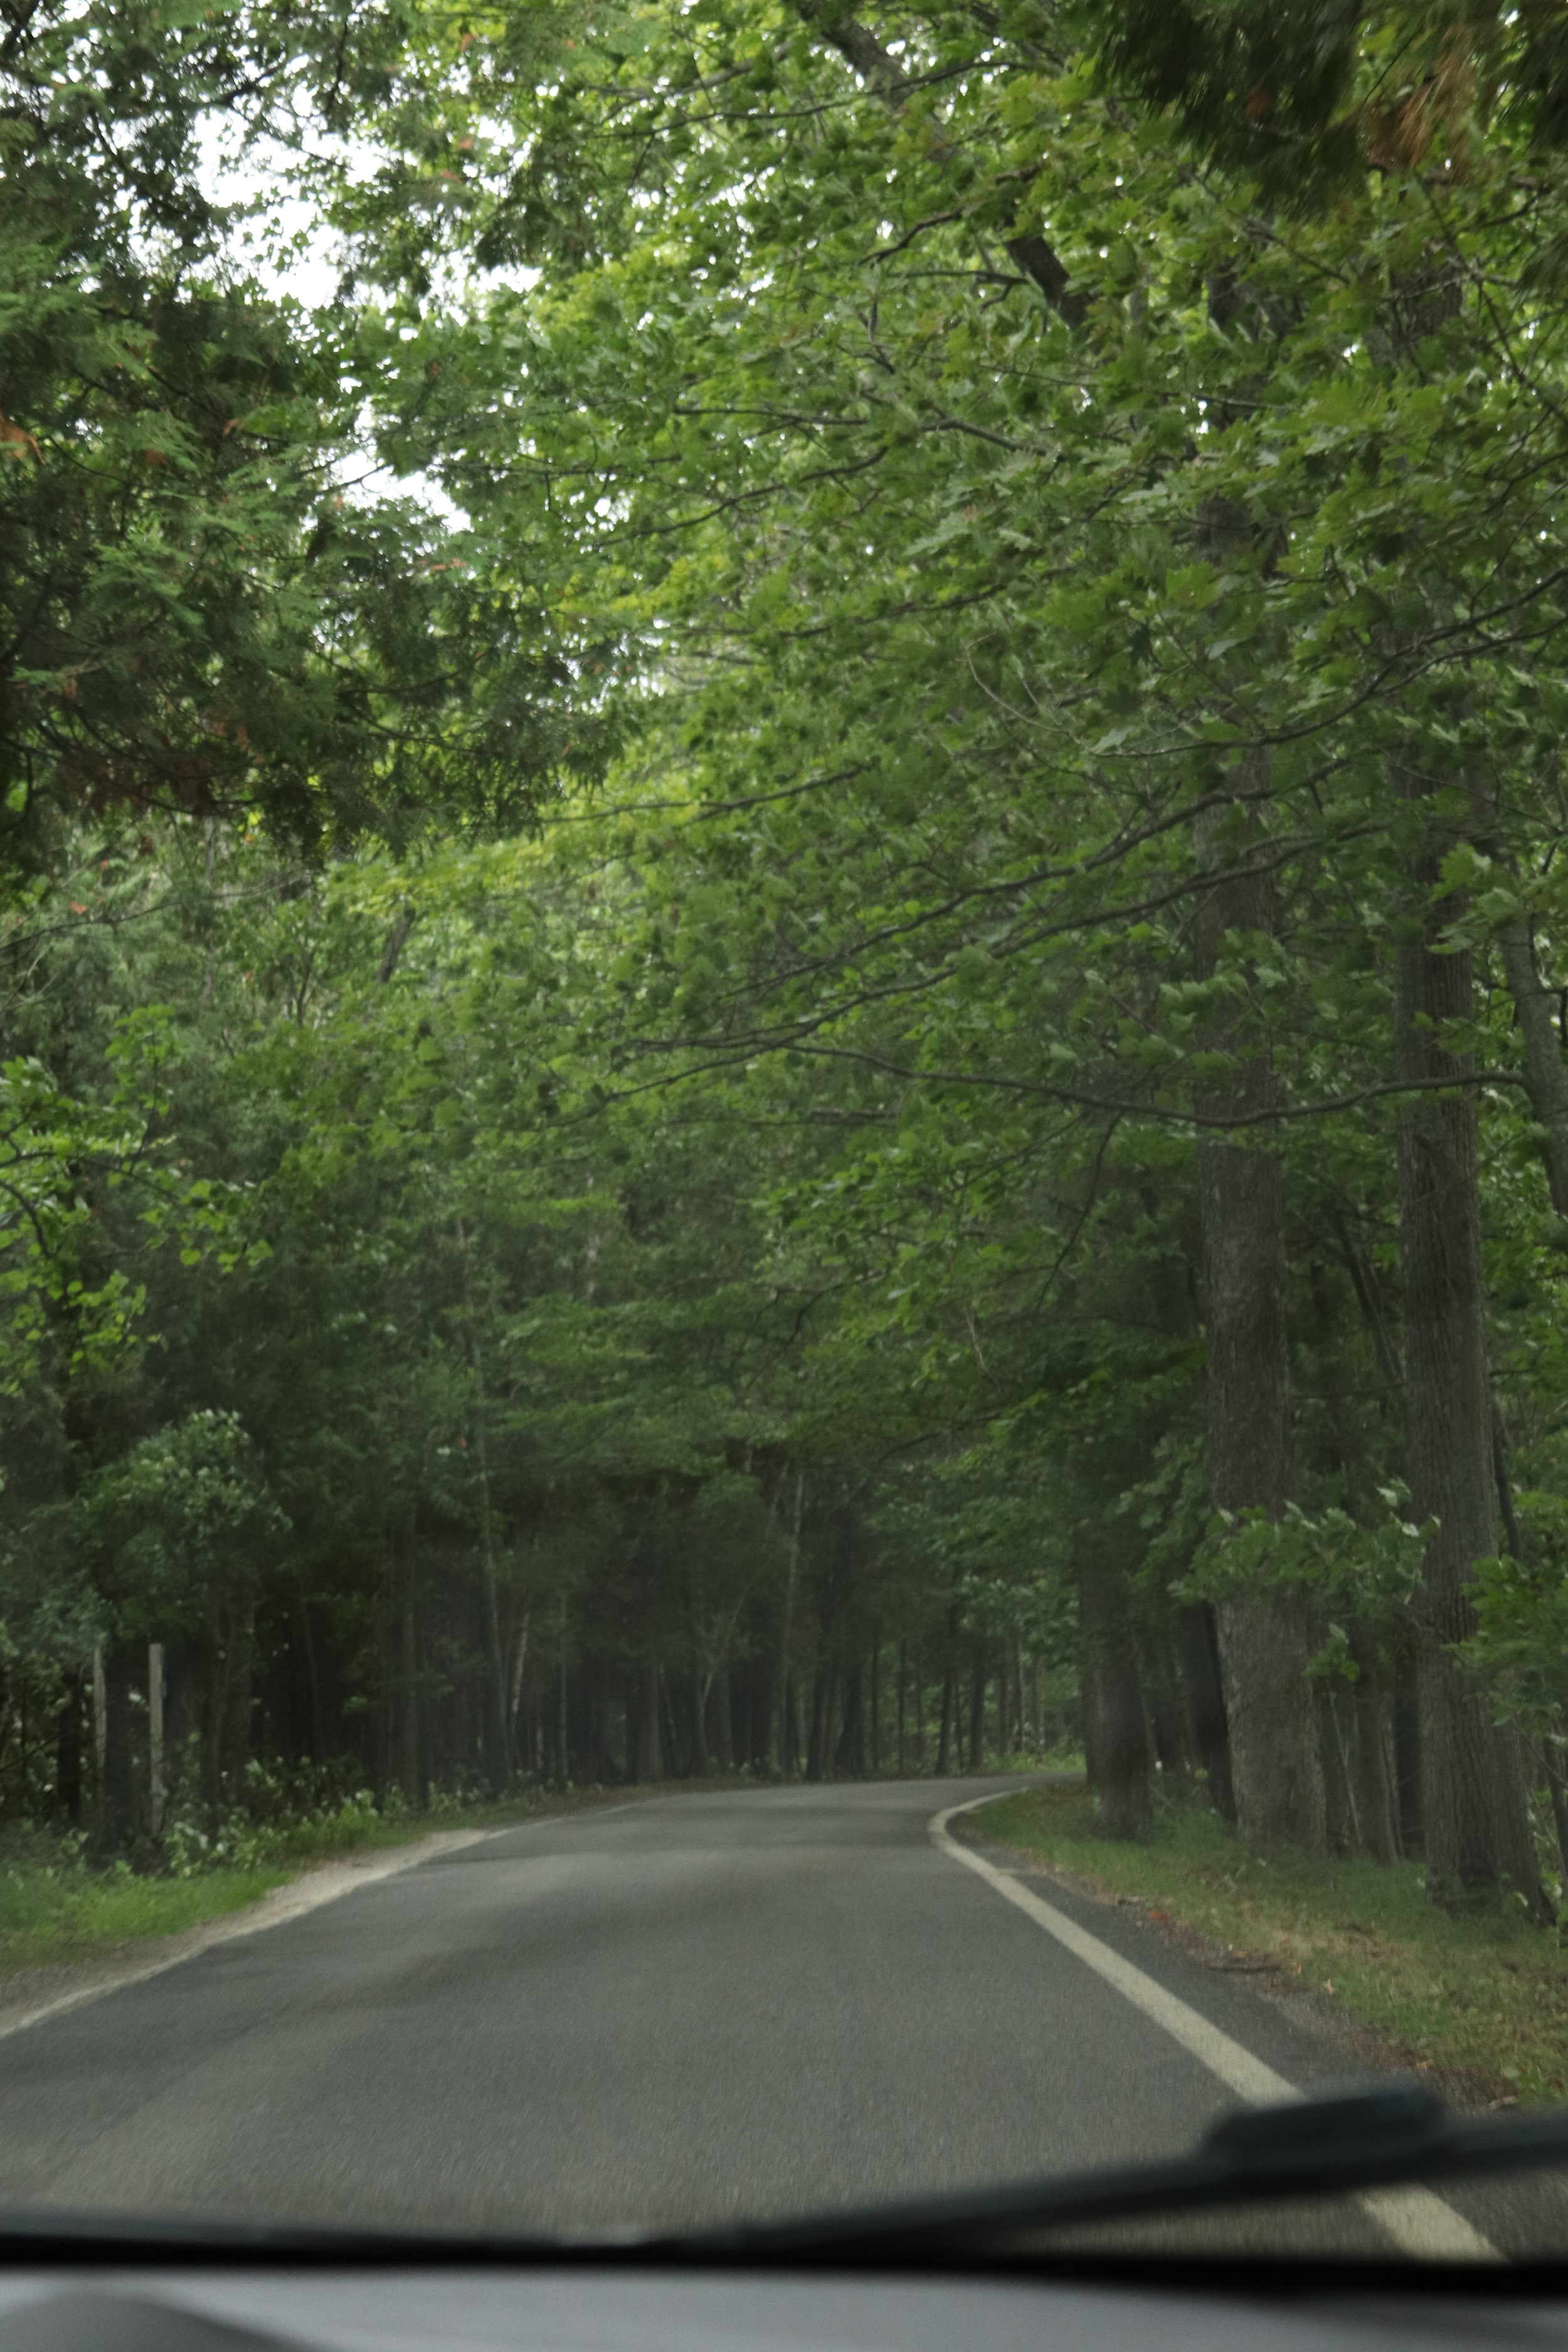 Tunnel of Trees - it reminded us of the Mountain Road in Smugglers Notch, only flat